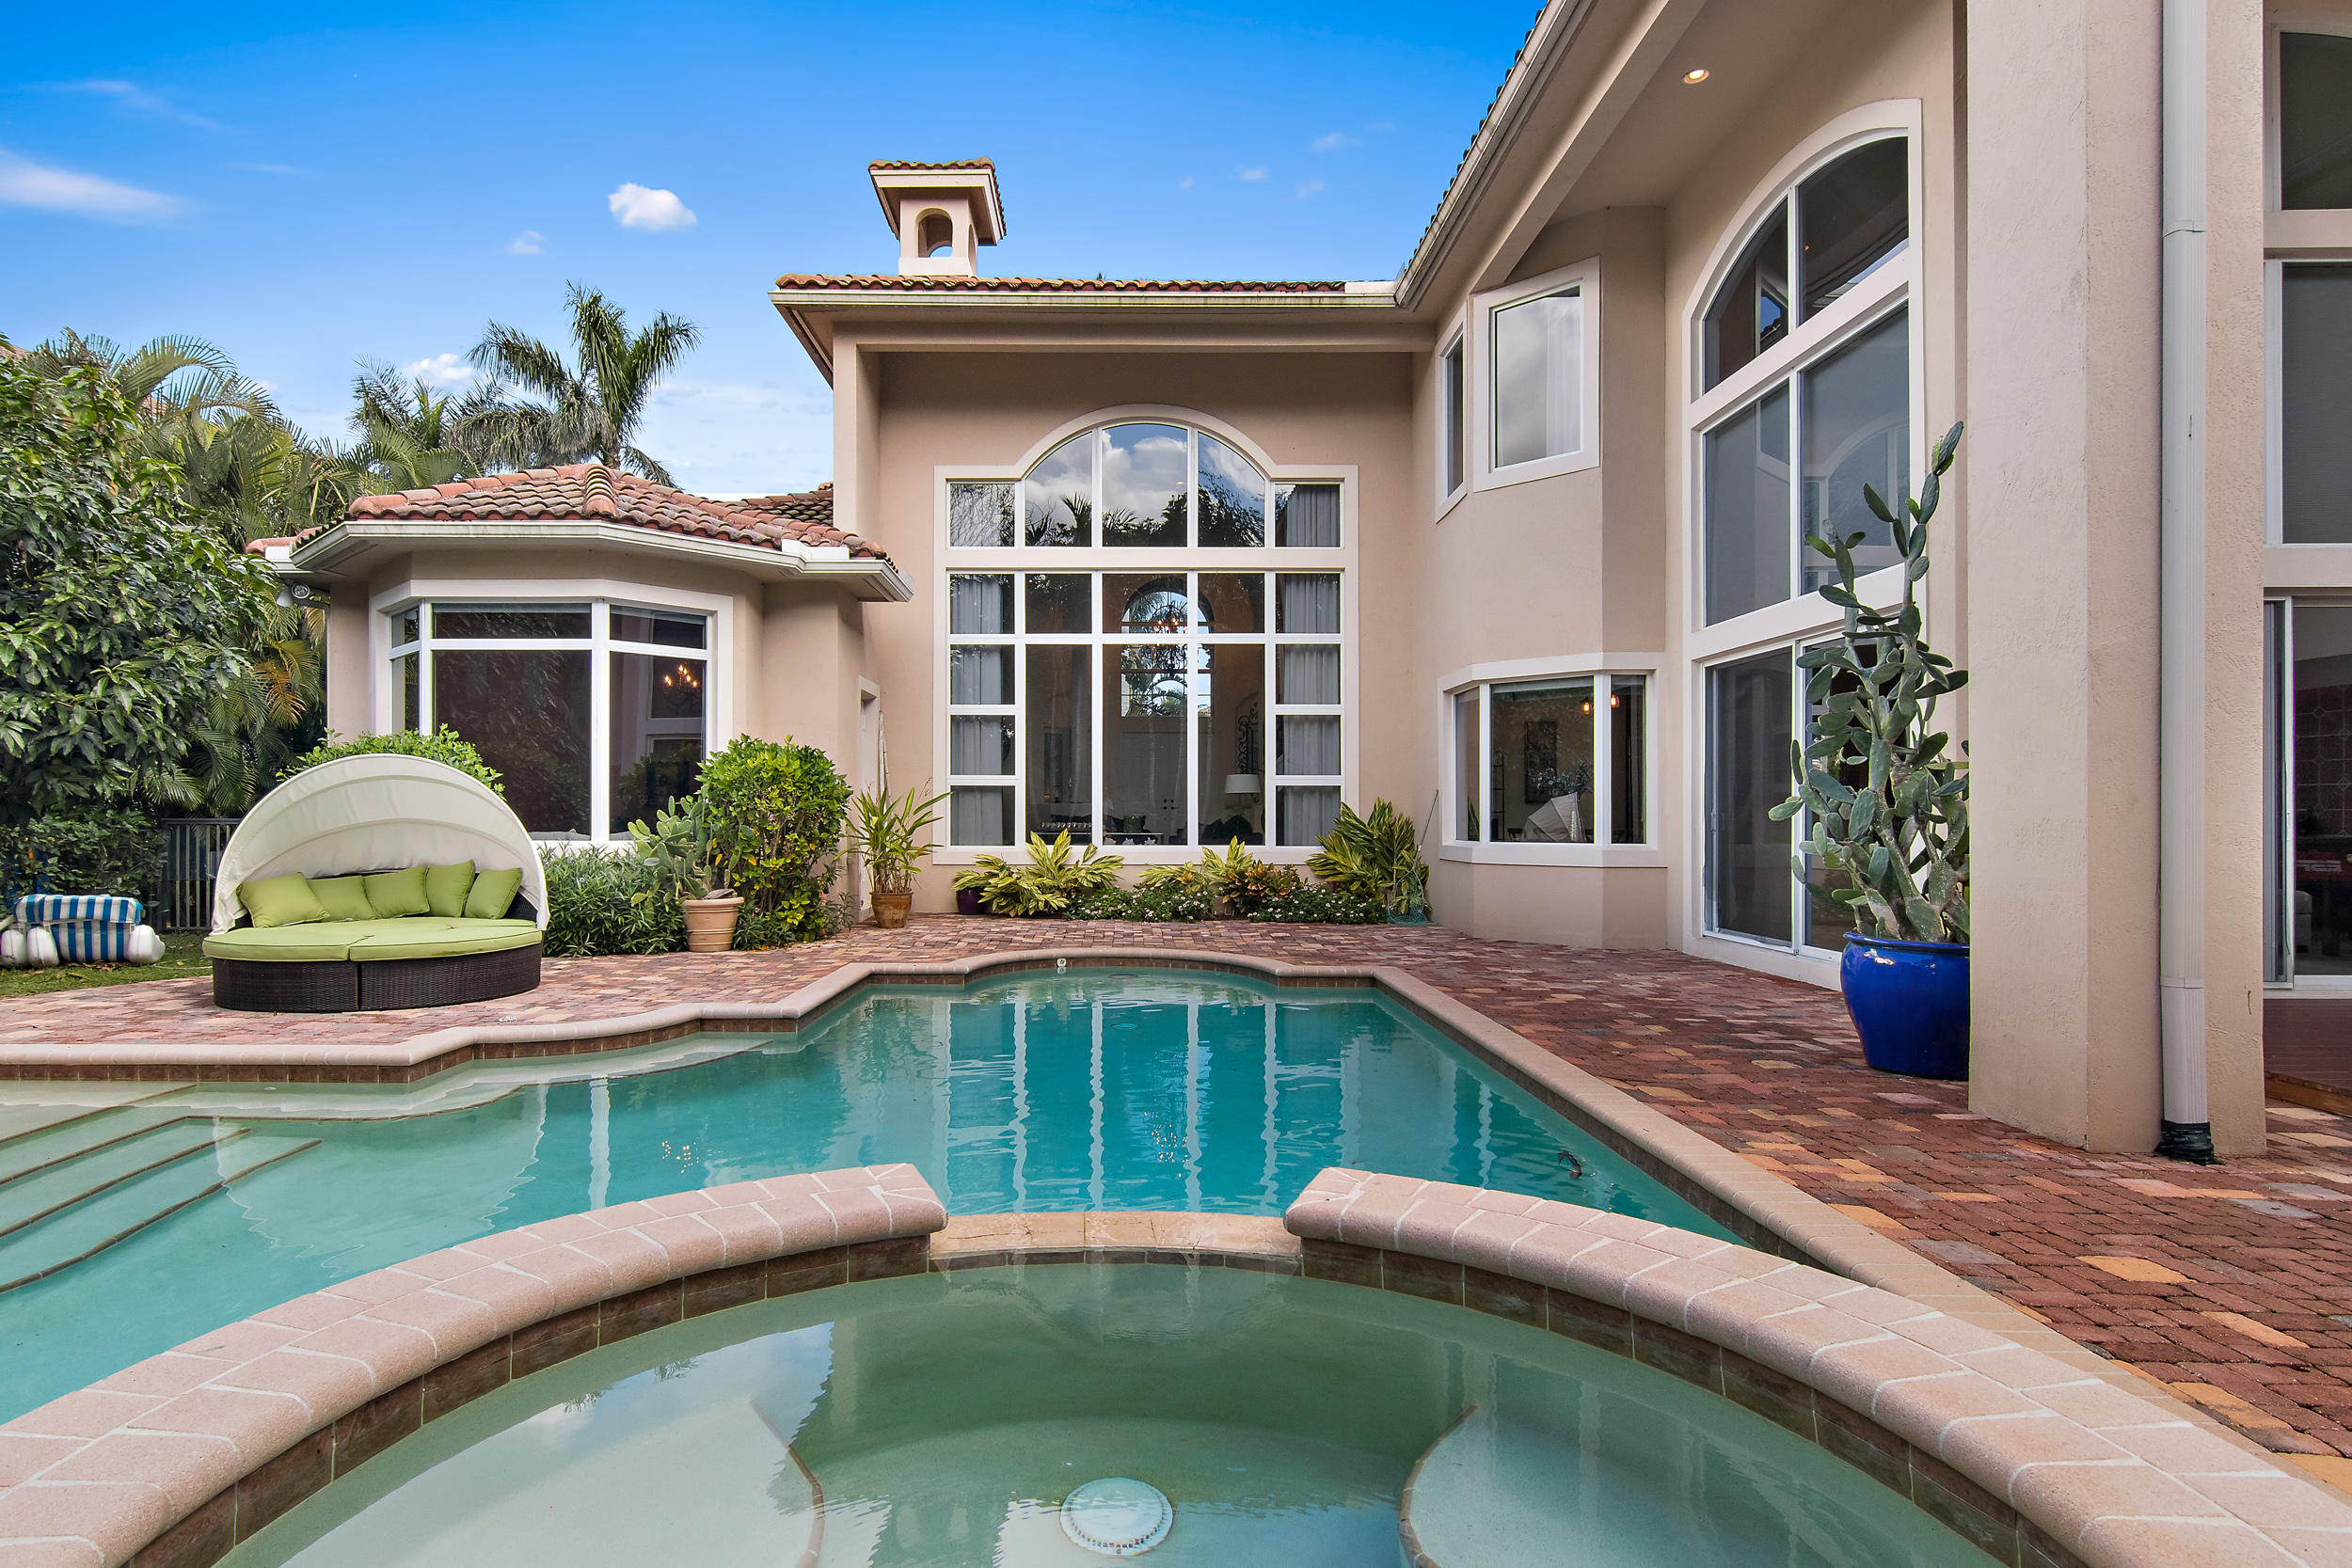 This five bedroom, custom home with mature plantings and oversized pool epitomizes a pampered, yet casual Florida lifestyle. Aaron Slims in Palm Beach. Polished marble floors, soaring ceilings, new wood floors on stairs and upper living areas. Panoramic windows showcase a picturesque backyard with heated pool and spa in a private gardens setting. Large lot allowing for privacy. Inside, there is a full chef's kitchen; dining room with exposed, French brick. Master suite has ample dressing area, built-in closets, roman tub and oversized shower. Generous bedrooms throughout, plus office, wet bar and upstairs loft. ALL IMPACT GLASS and full home generator. Numerous upgrades in this sought after Casa Del Sol model. (see supplement). Frenchman's offers state of the art tennis, golf, pool, gym, restaurants and spa. 24 hour manned gate. Clubhouse was recently renovated. Close to beaches, entertainment, fine dining, shopping, private and public schools. SPORTS membership with this home, but may upgrade to GOLF. New Stove, one newer AC, new dishwasher, painted, kitchen and master renovations, inside and out freshly painted.